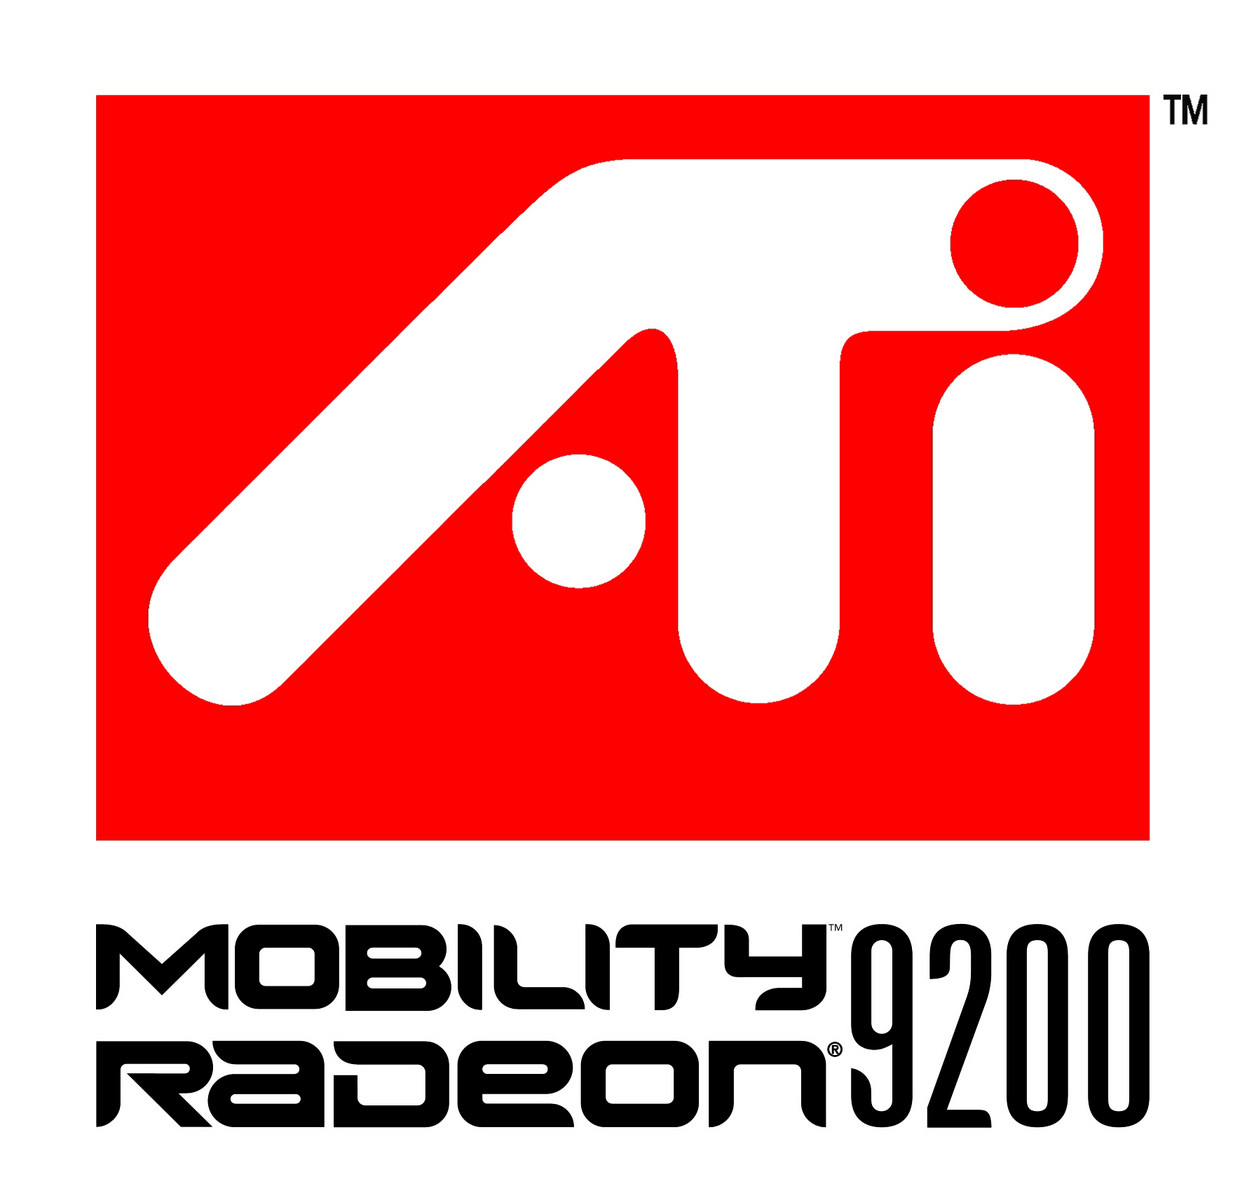 MOBILITY RADEON 9200 DRIVER FOR WINDOWS 7